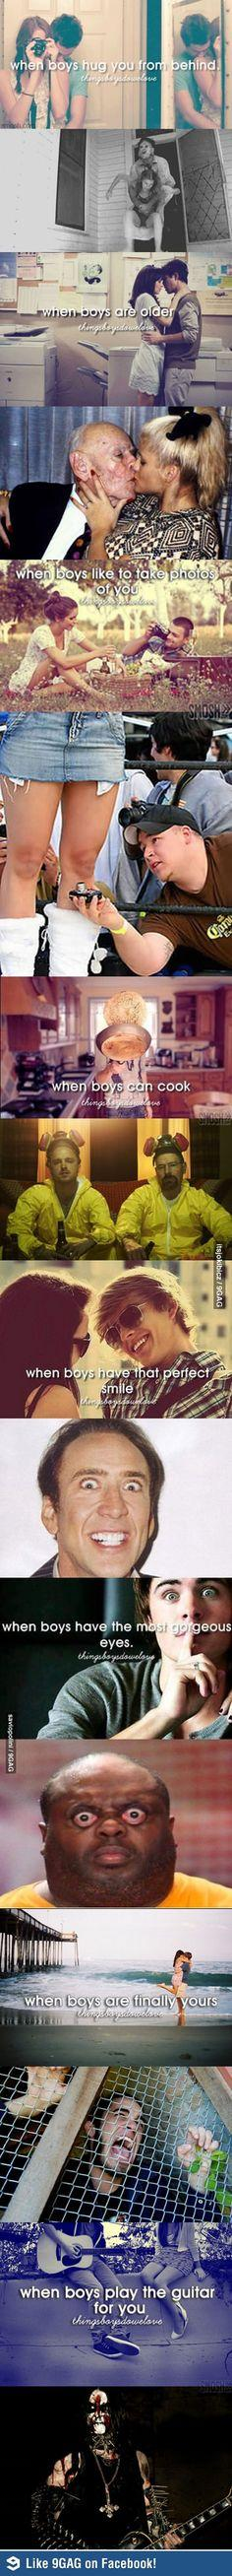 When boys...make me laugh: Boys Hahahahahaha, Giggle, Boys Lol, Real Life, Funny Stuff, Just Girly Things, So Funny, Died Laughing